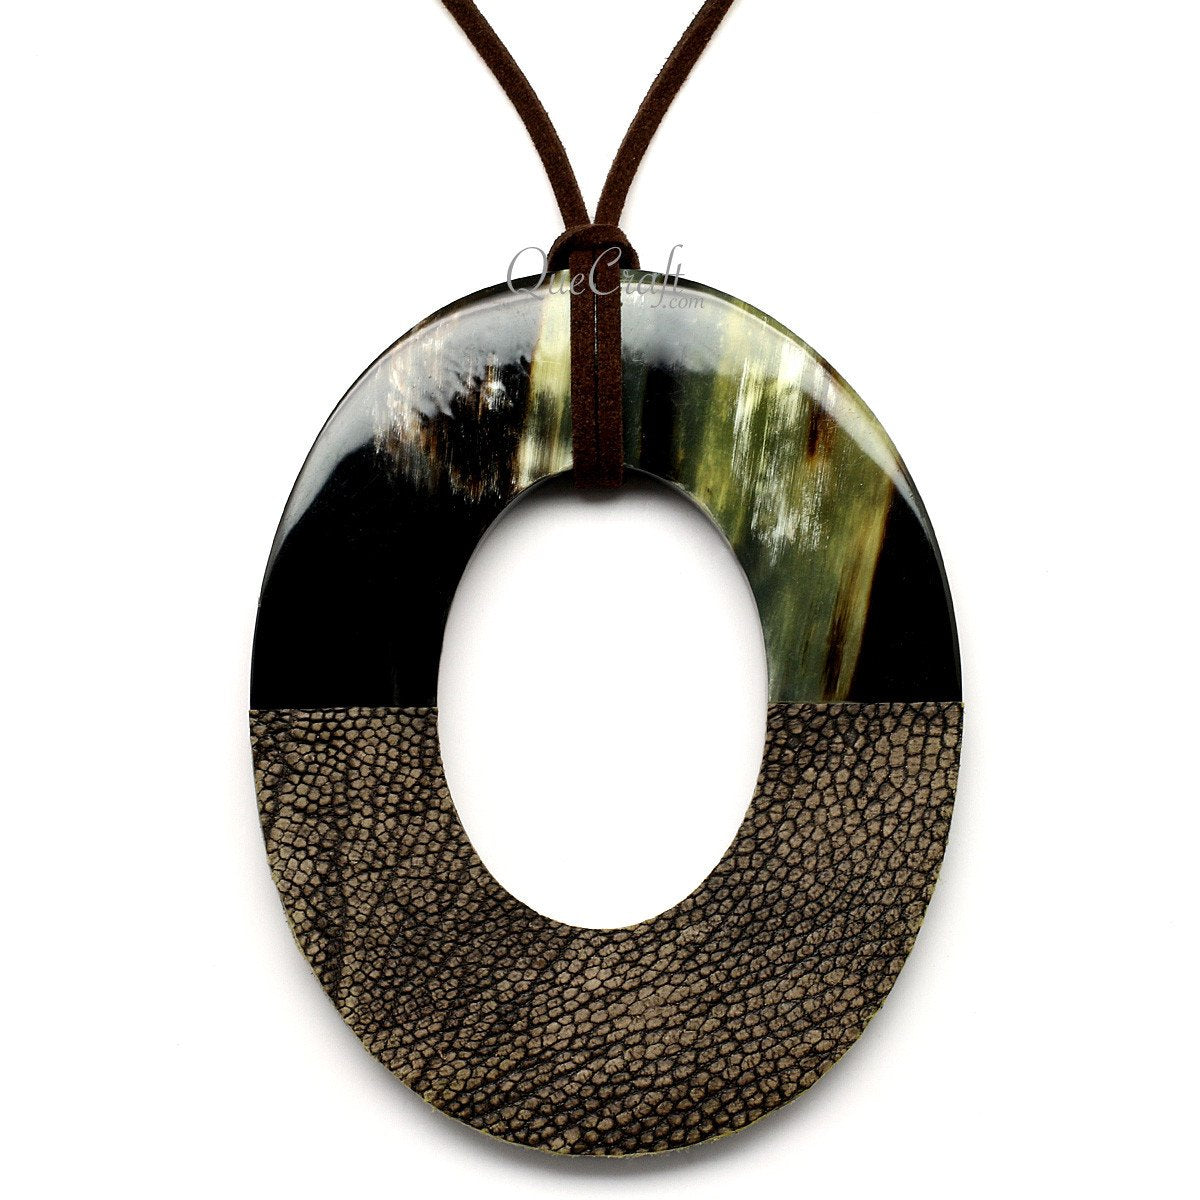 Horn & Leather Pendant #12506 - HORN.JEWELRY